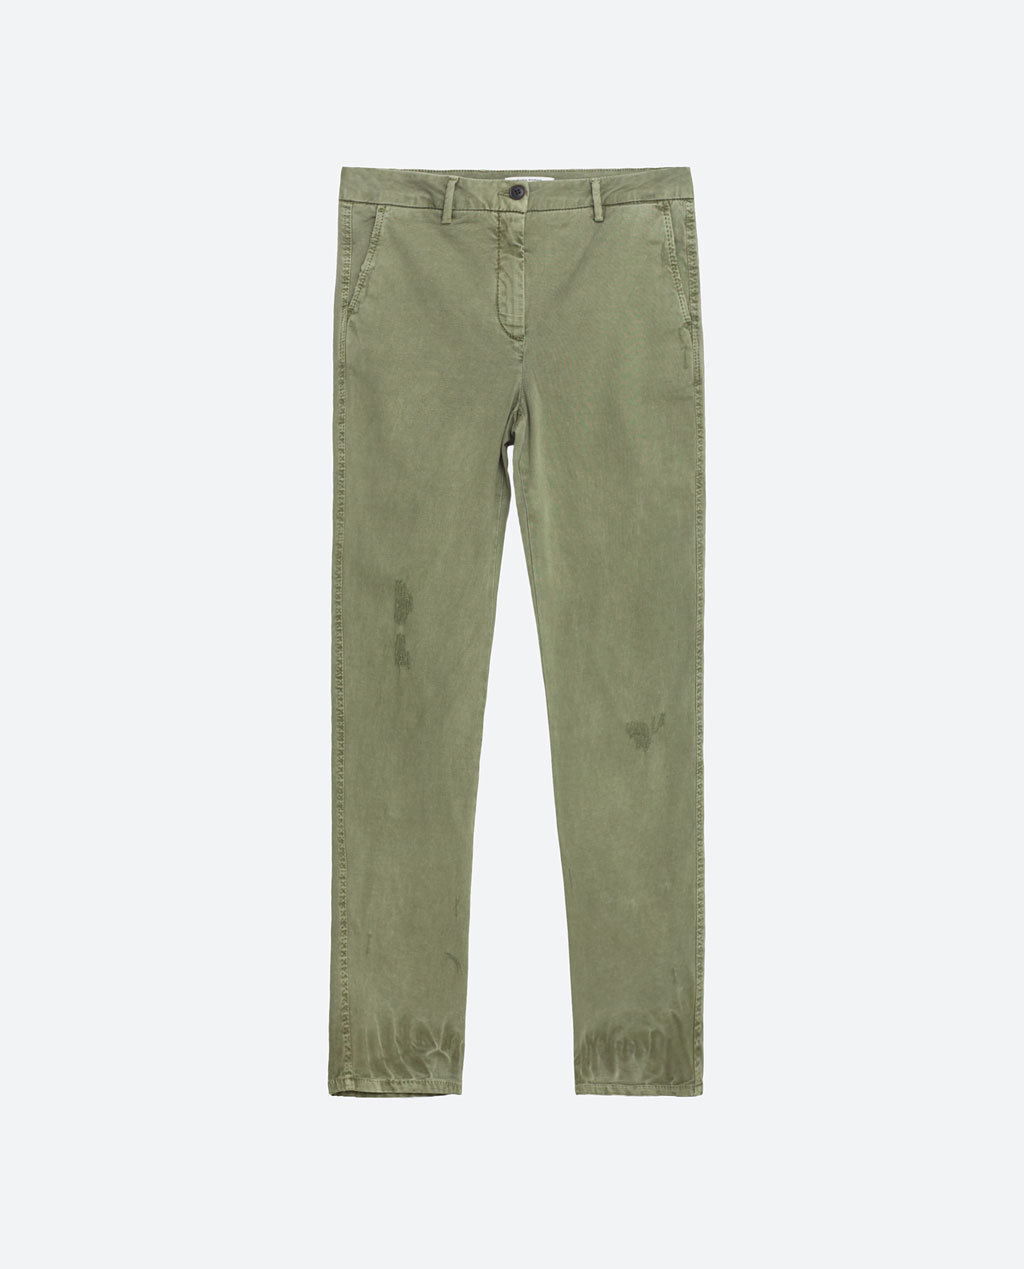 Chino Trousers - pattern: plain; waist: mid/regular rise; predominant colour: khaki; occasions: casual, holiday; length: ankle length; style: chino; fibres: cotton - 100%; waist detail: narrow waistband; texture group: cotton feel fabrics; fit: slim leg; pattern type: fabric; season: s/s 2016; wardrobe: basic